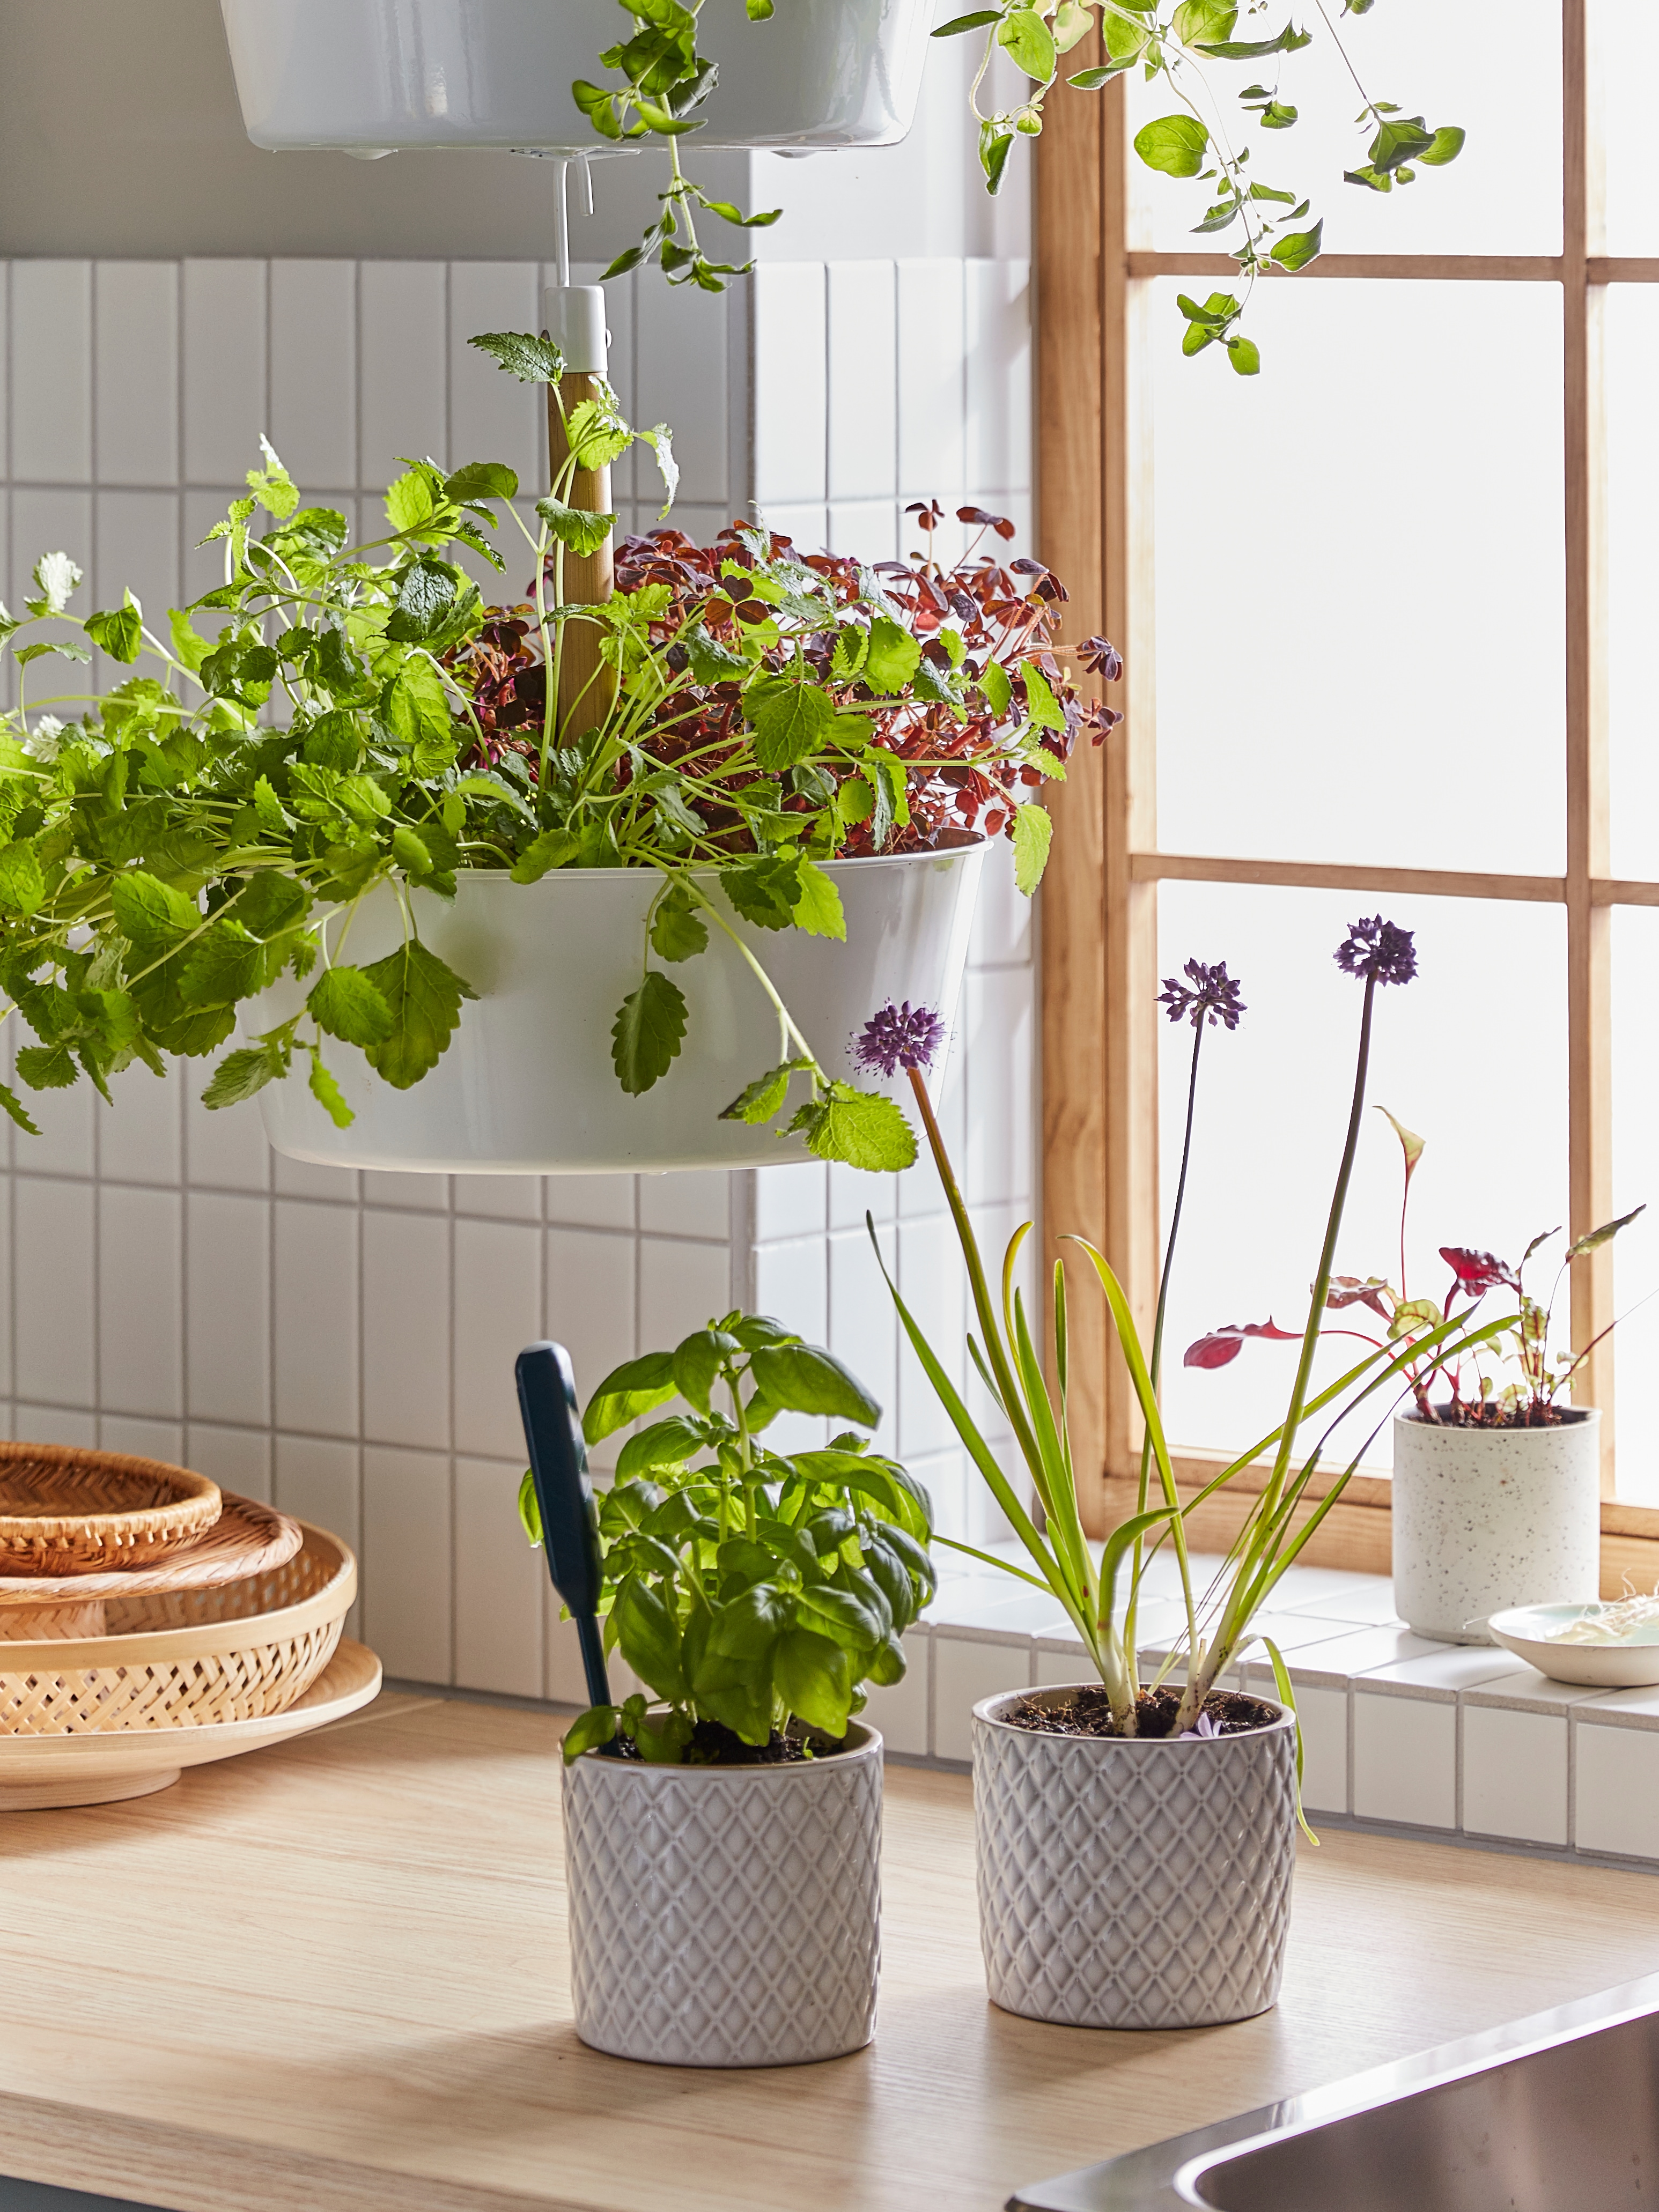 Kitchen with white tiles, hanging planters with plants hung on the ceiling, two plant pots with herbs and plants, on counter top.